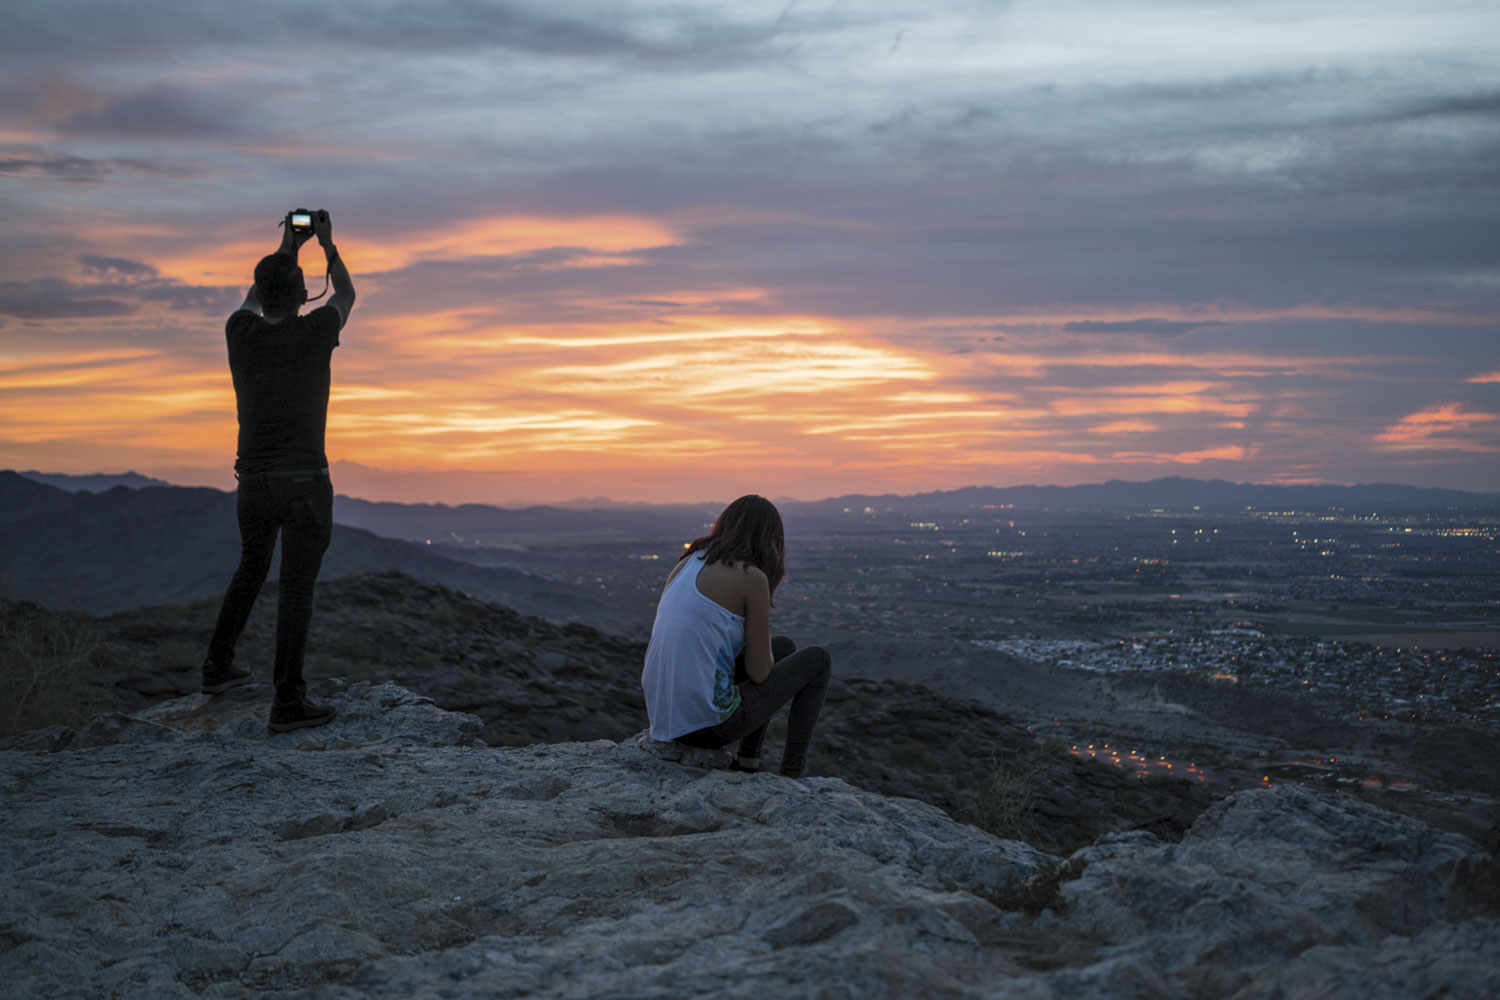 Valley lookout at South Mountain; photo by Carl Schultz